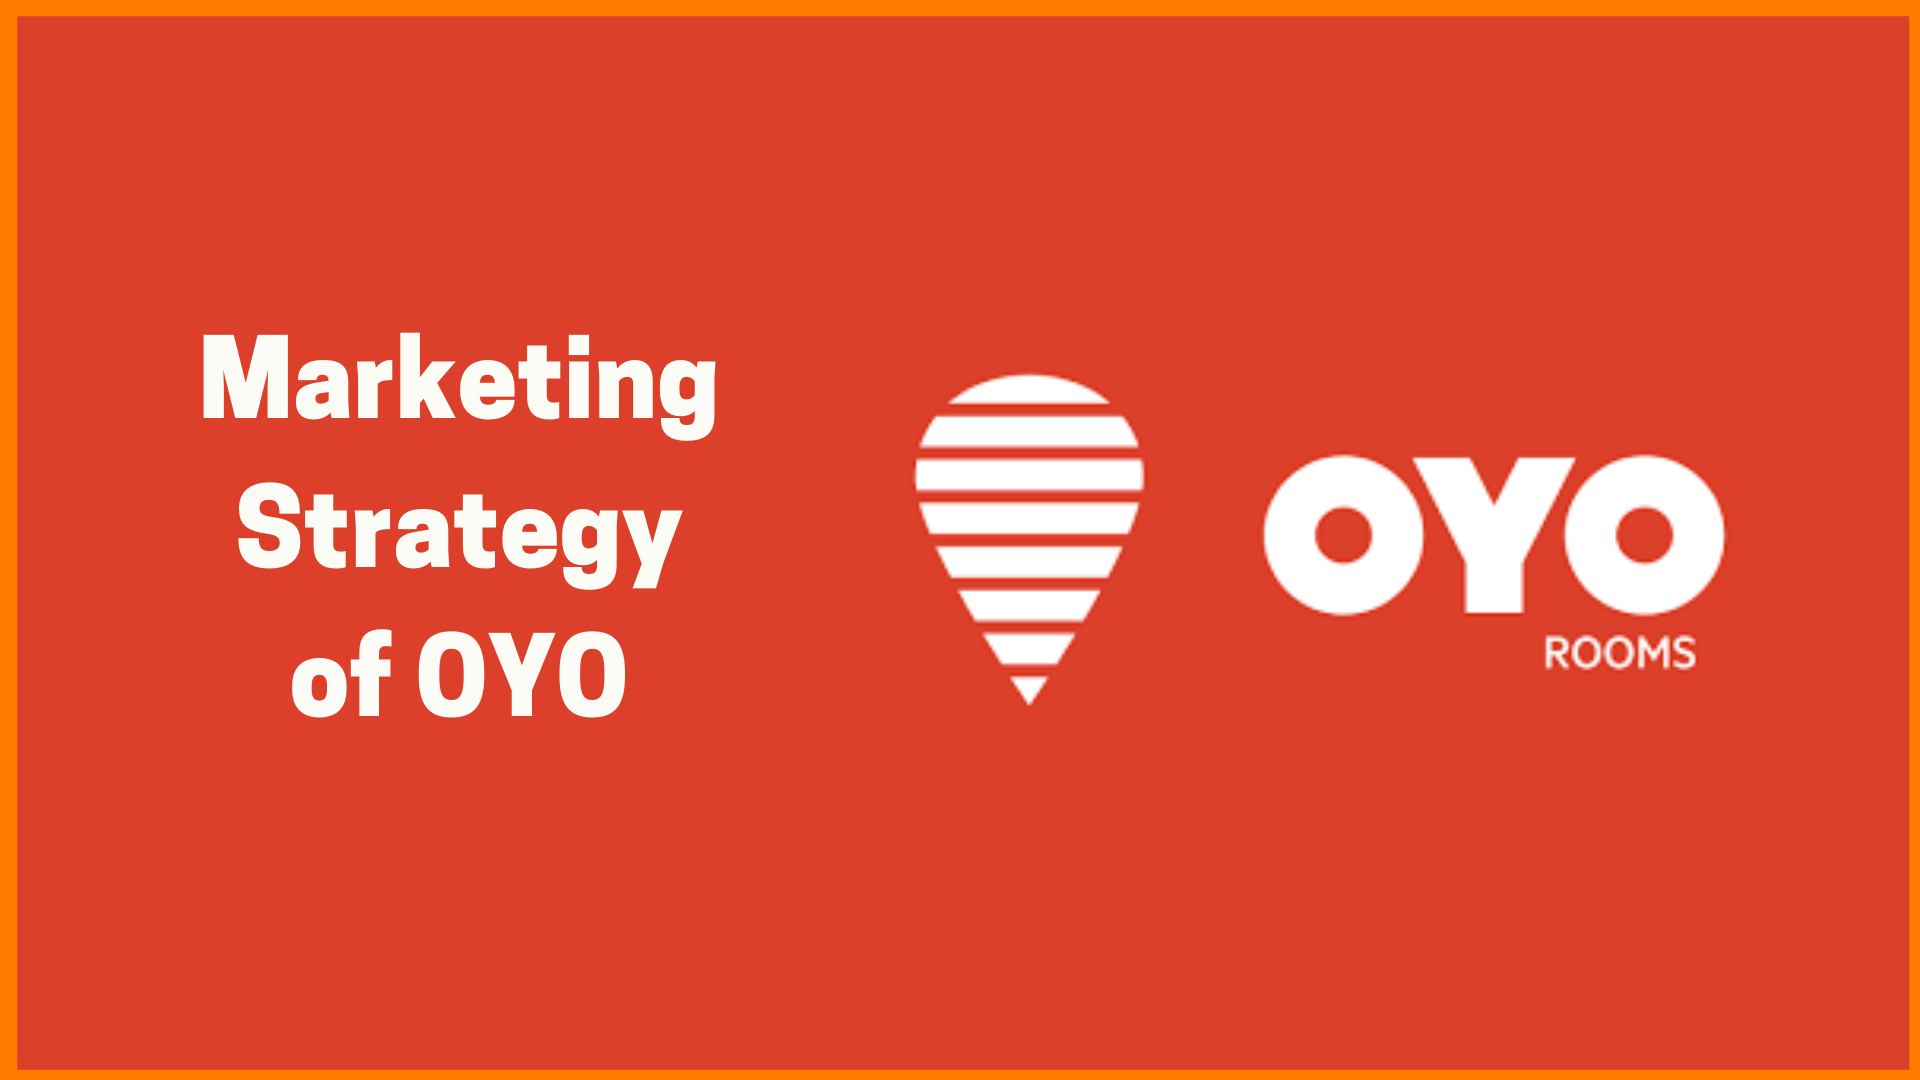 How OYO Marketed Itself: Marketing Strategy of OYO